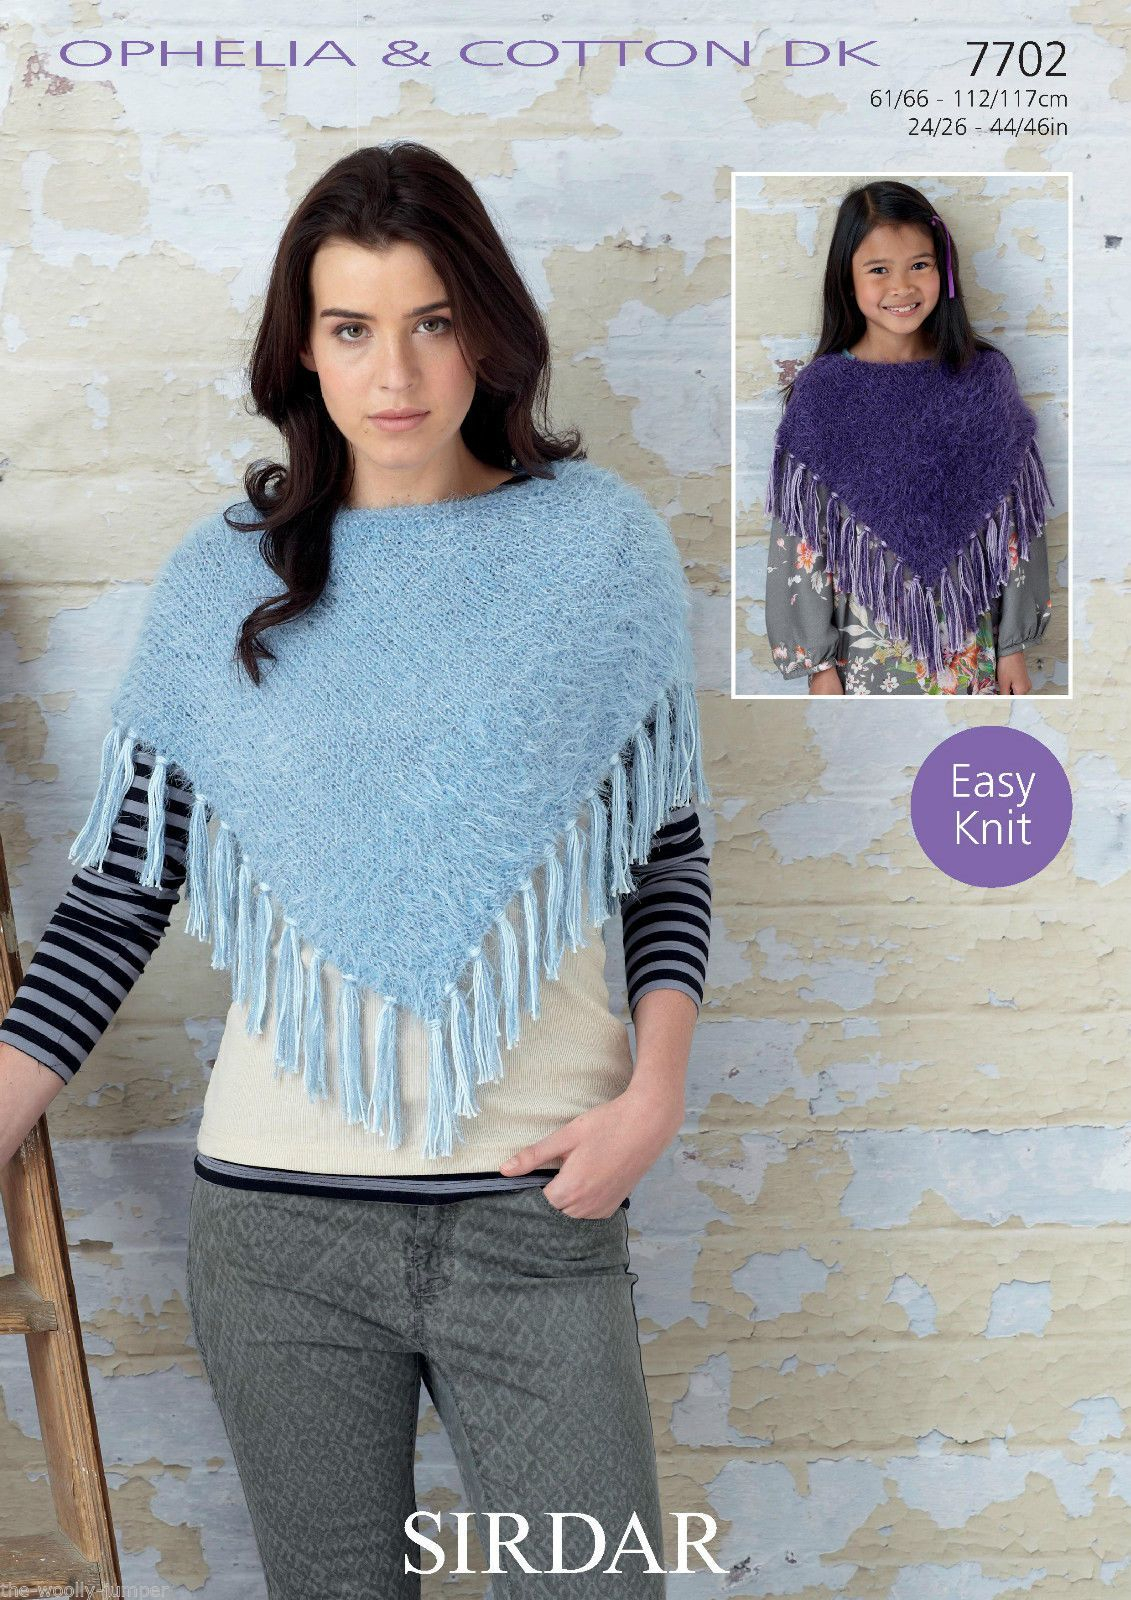 Poncho Knitting Pattern Chunky 7702 Sirdar Ophelia Chunky Poncho Knitting Pattern To Fit Chest Size 24 To 46